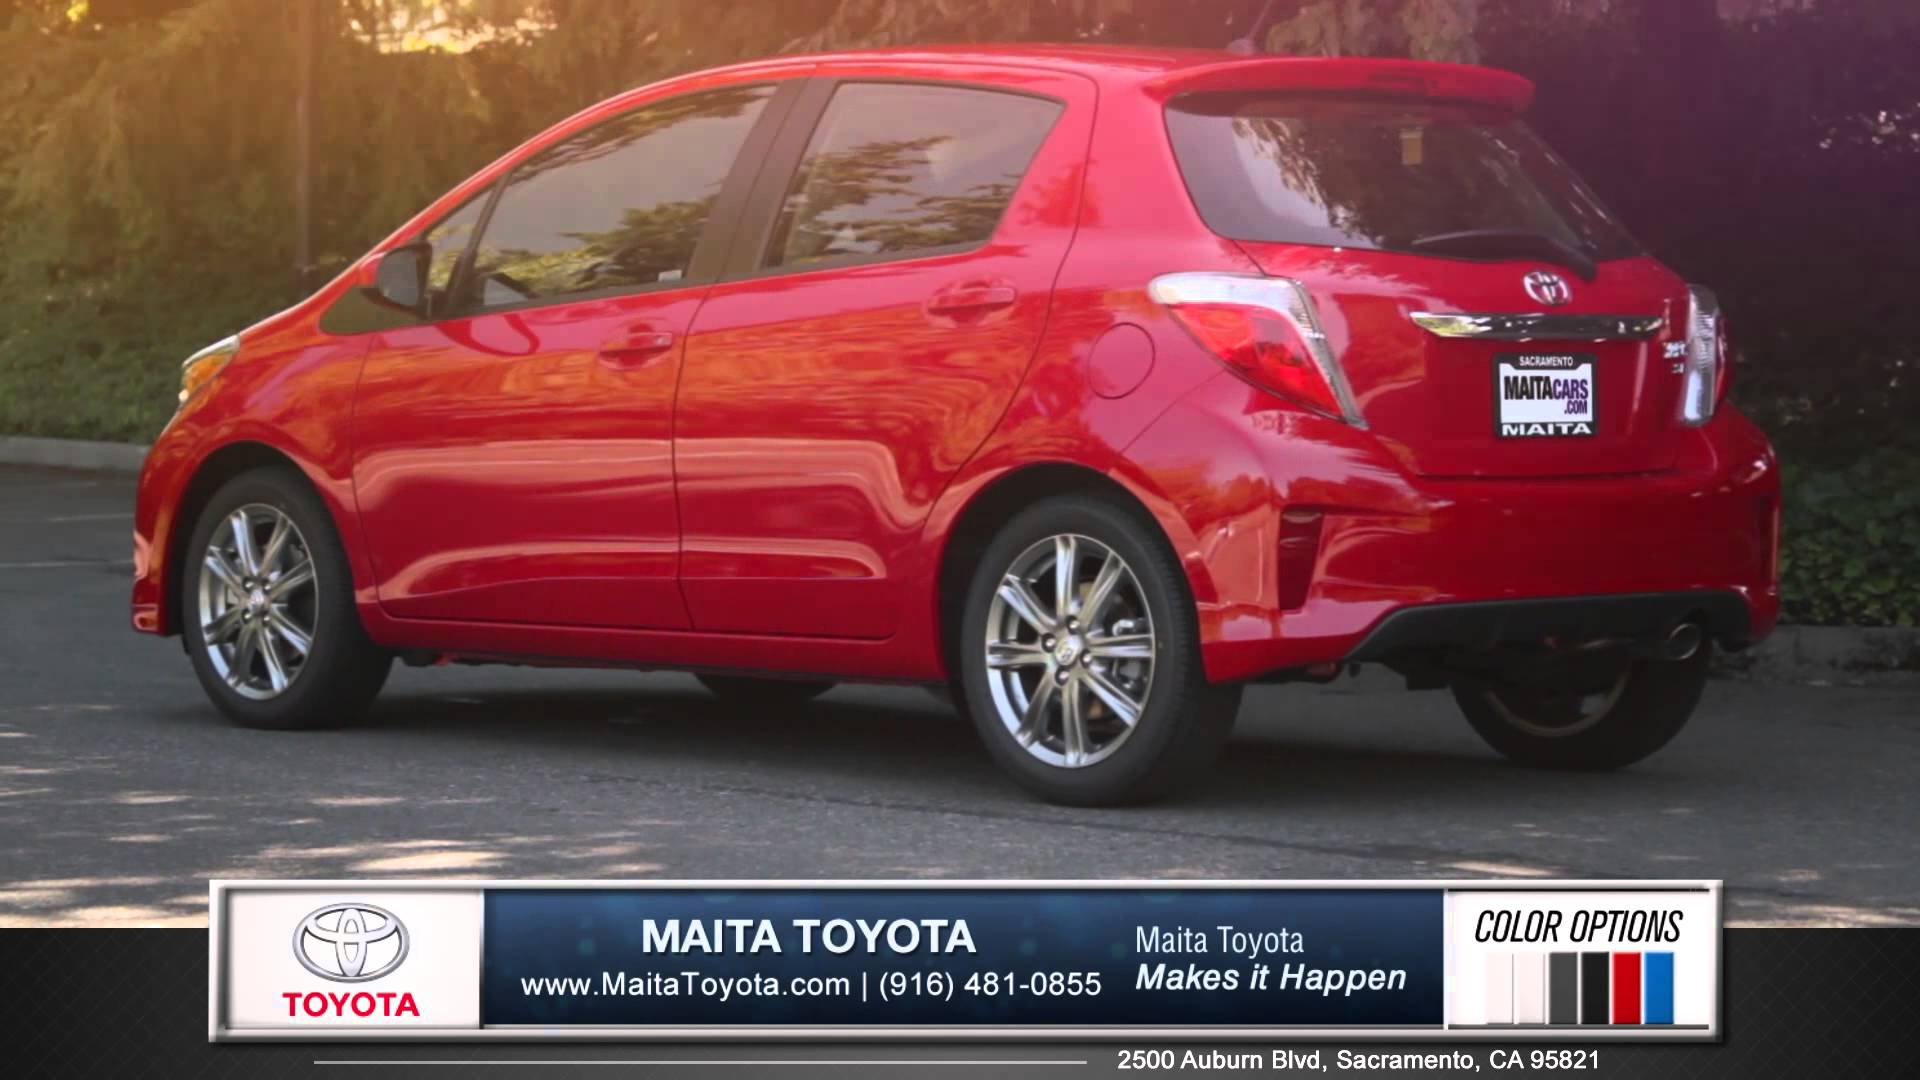 2015 toyota yaris car review maita toyota